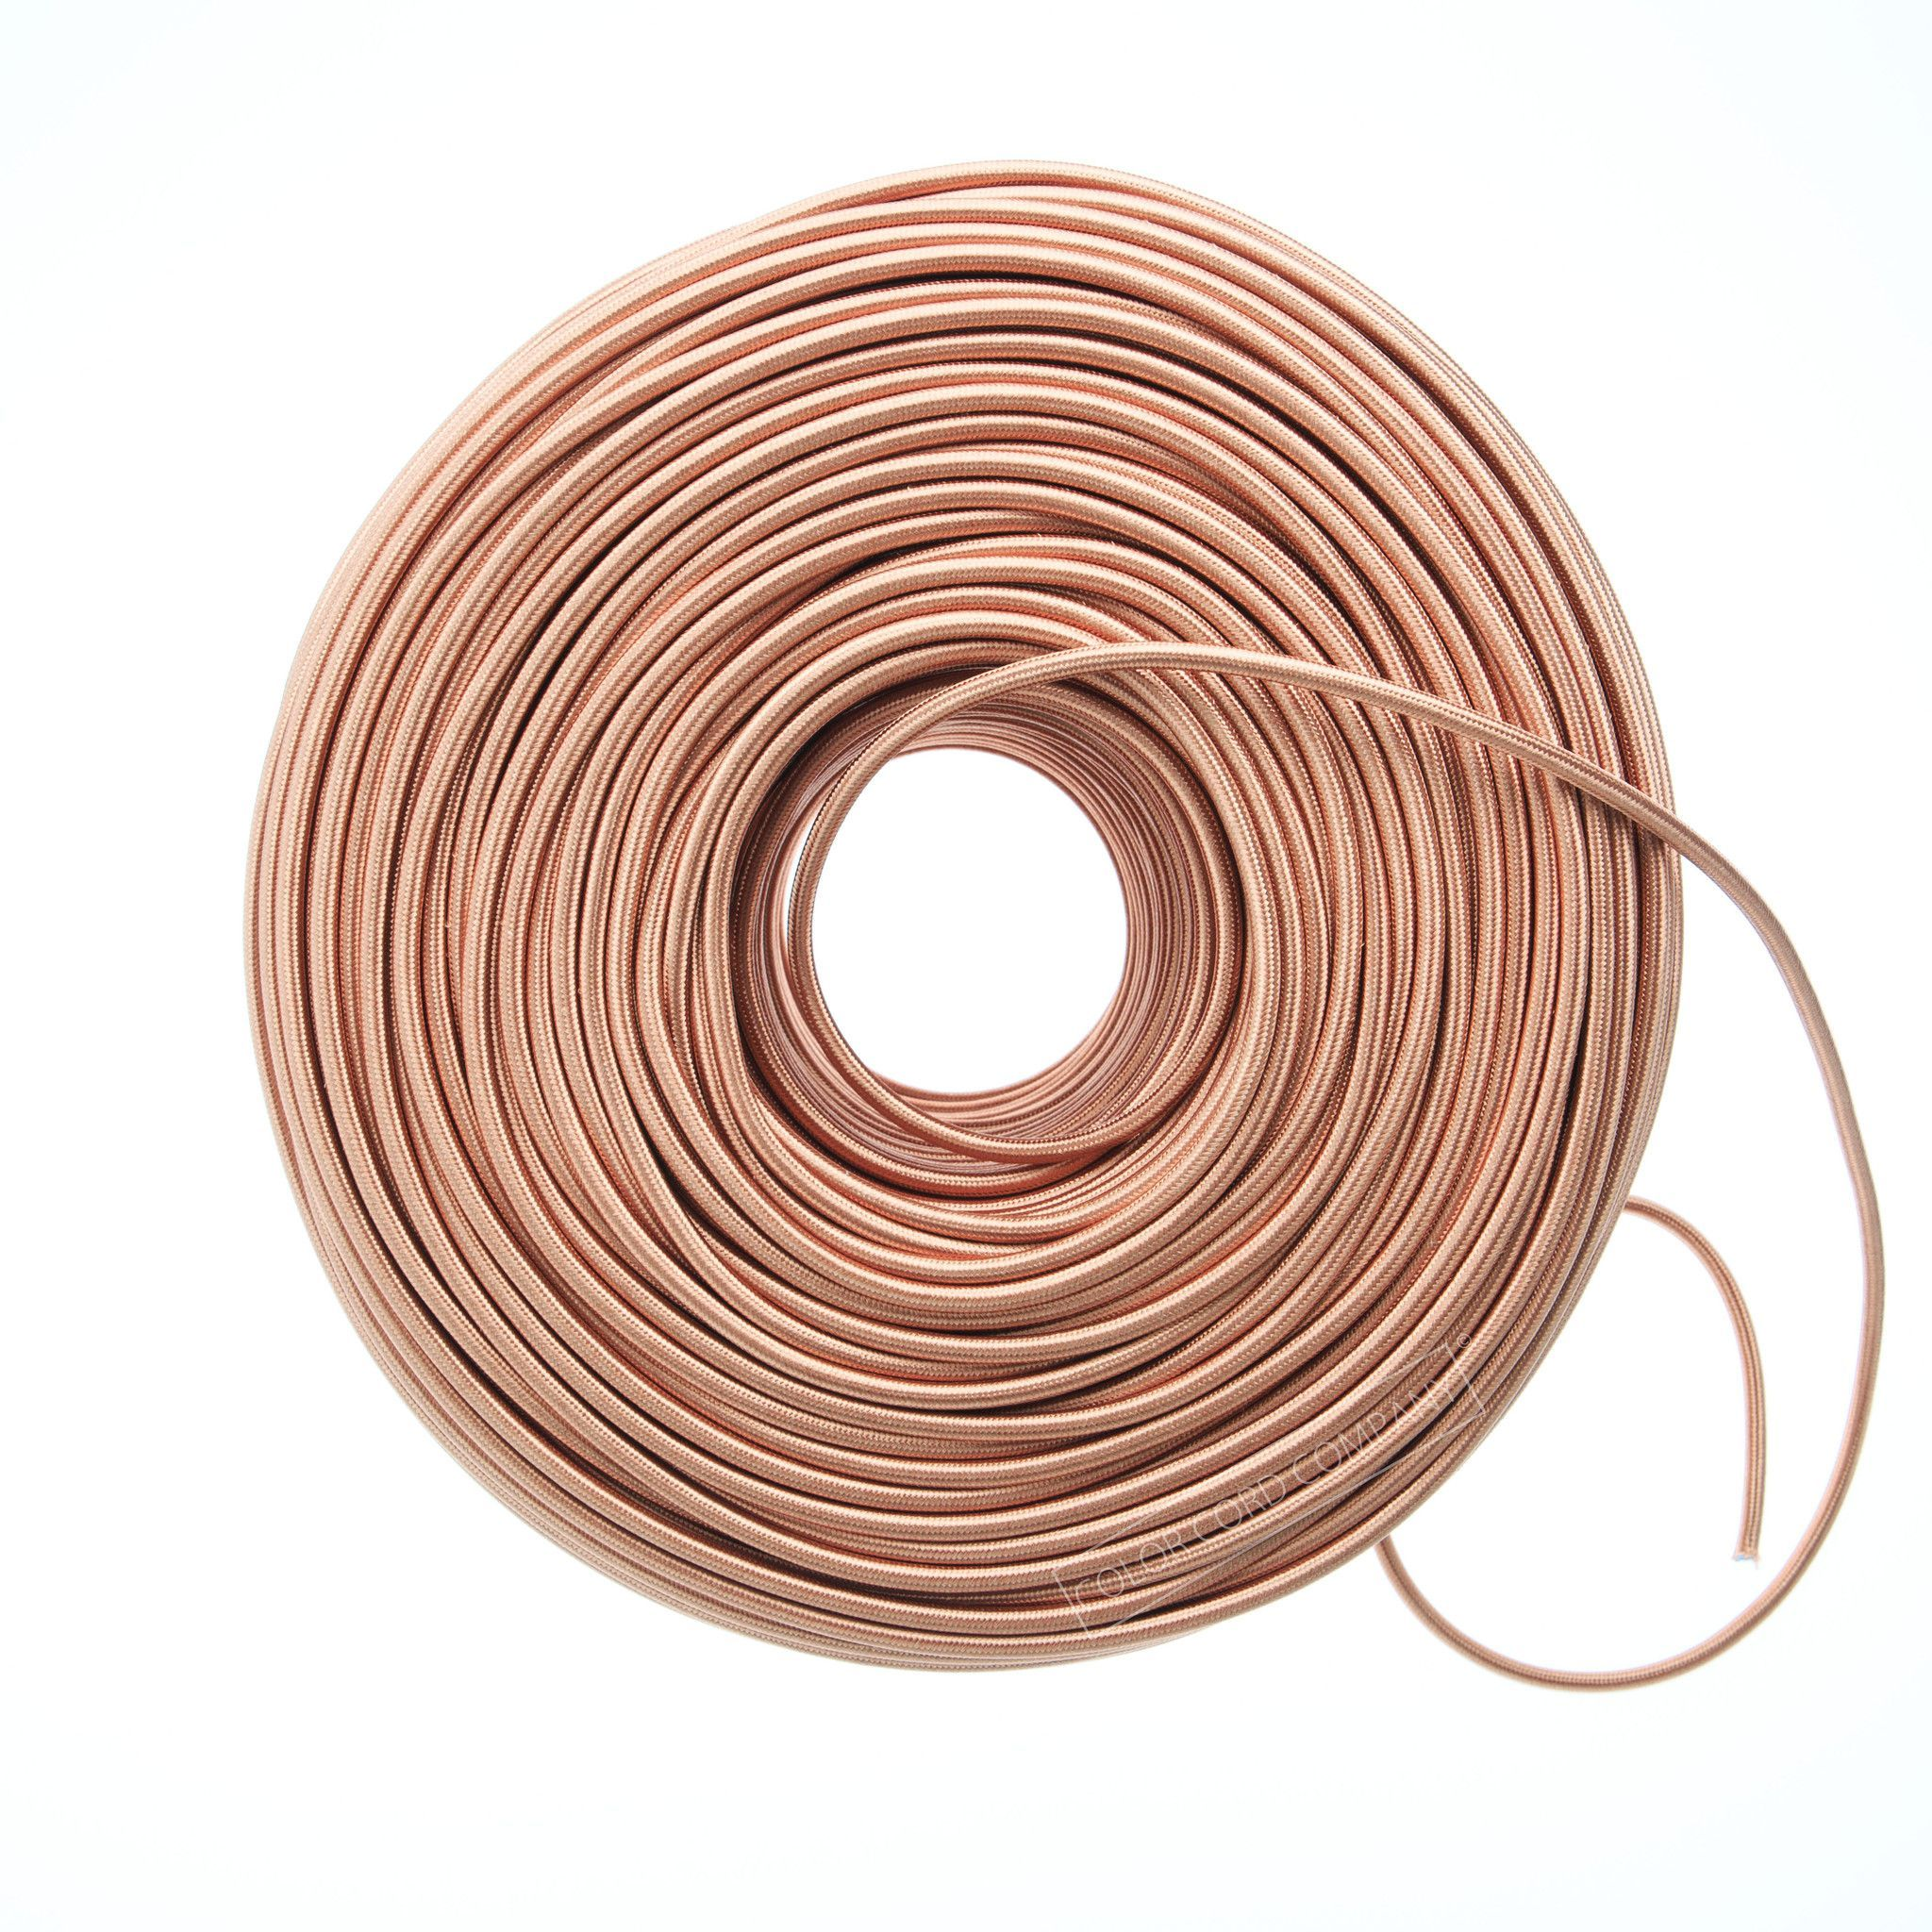 Craft Cloth Wrapped Wire Center Stick Shift Diagram Get Domain Pictures Getdomainvidscom Diy Fabric By The Foot Copper Penny And Crafts Rh Pinterest Com